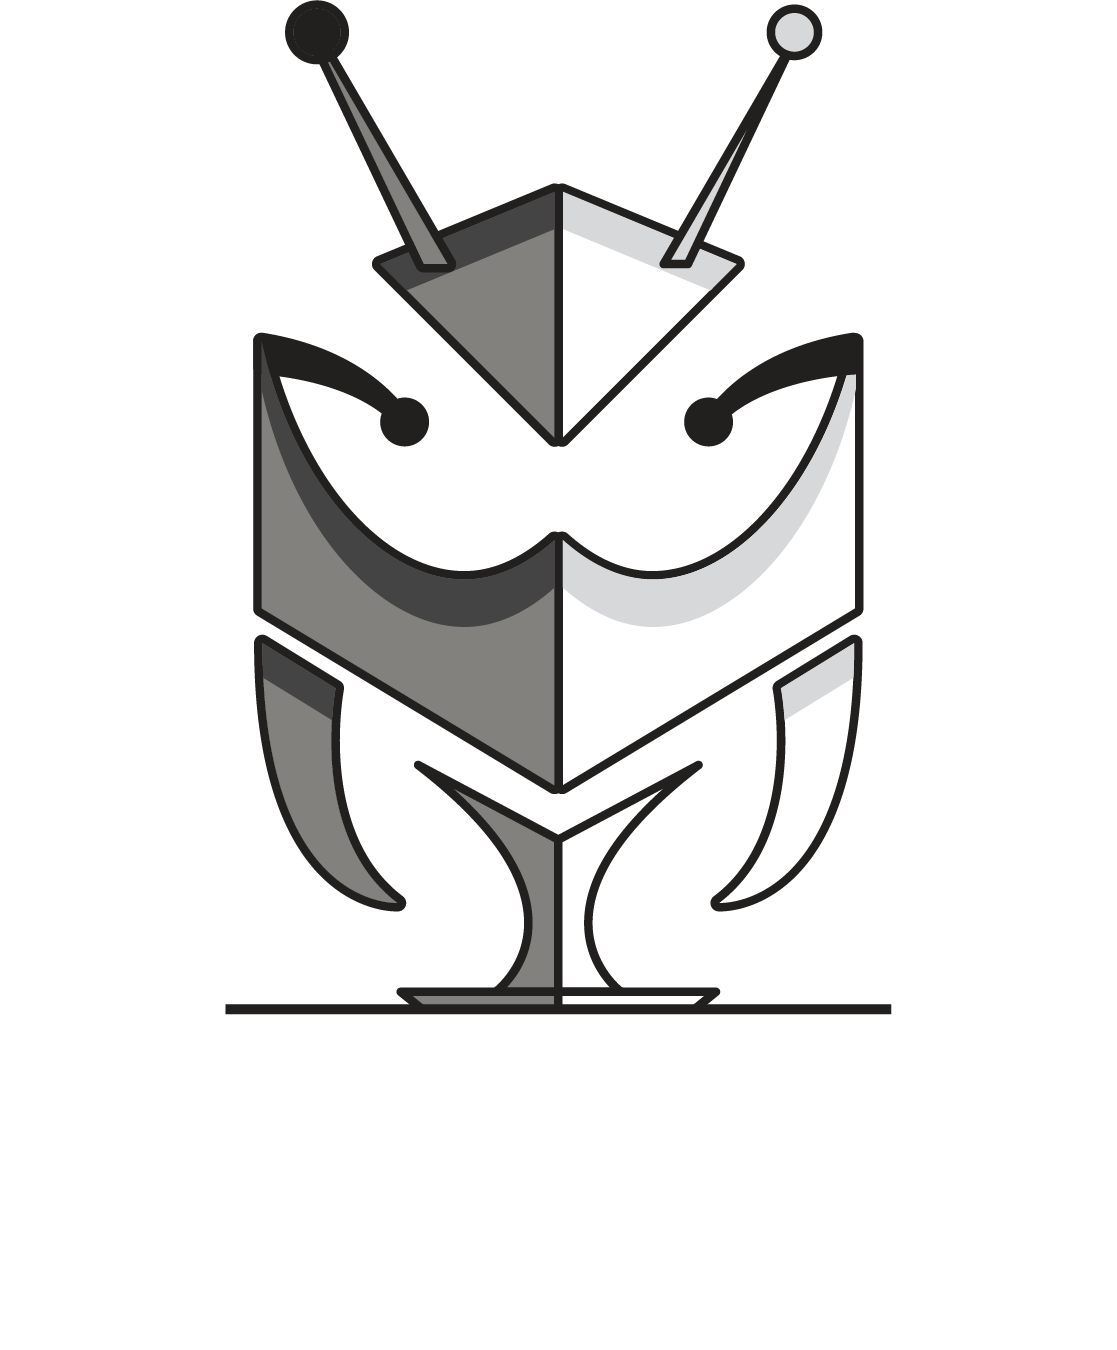 Playmantis Studio Private Limited